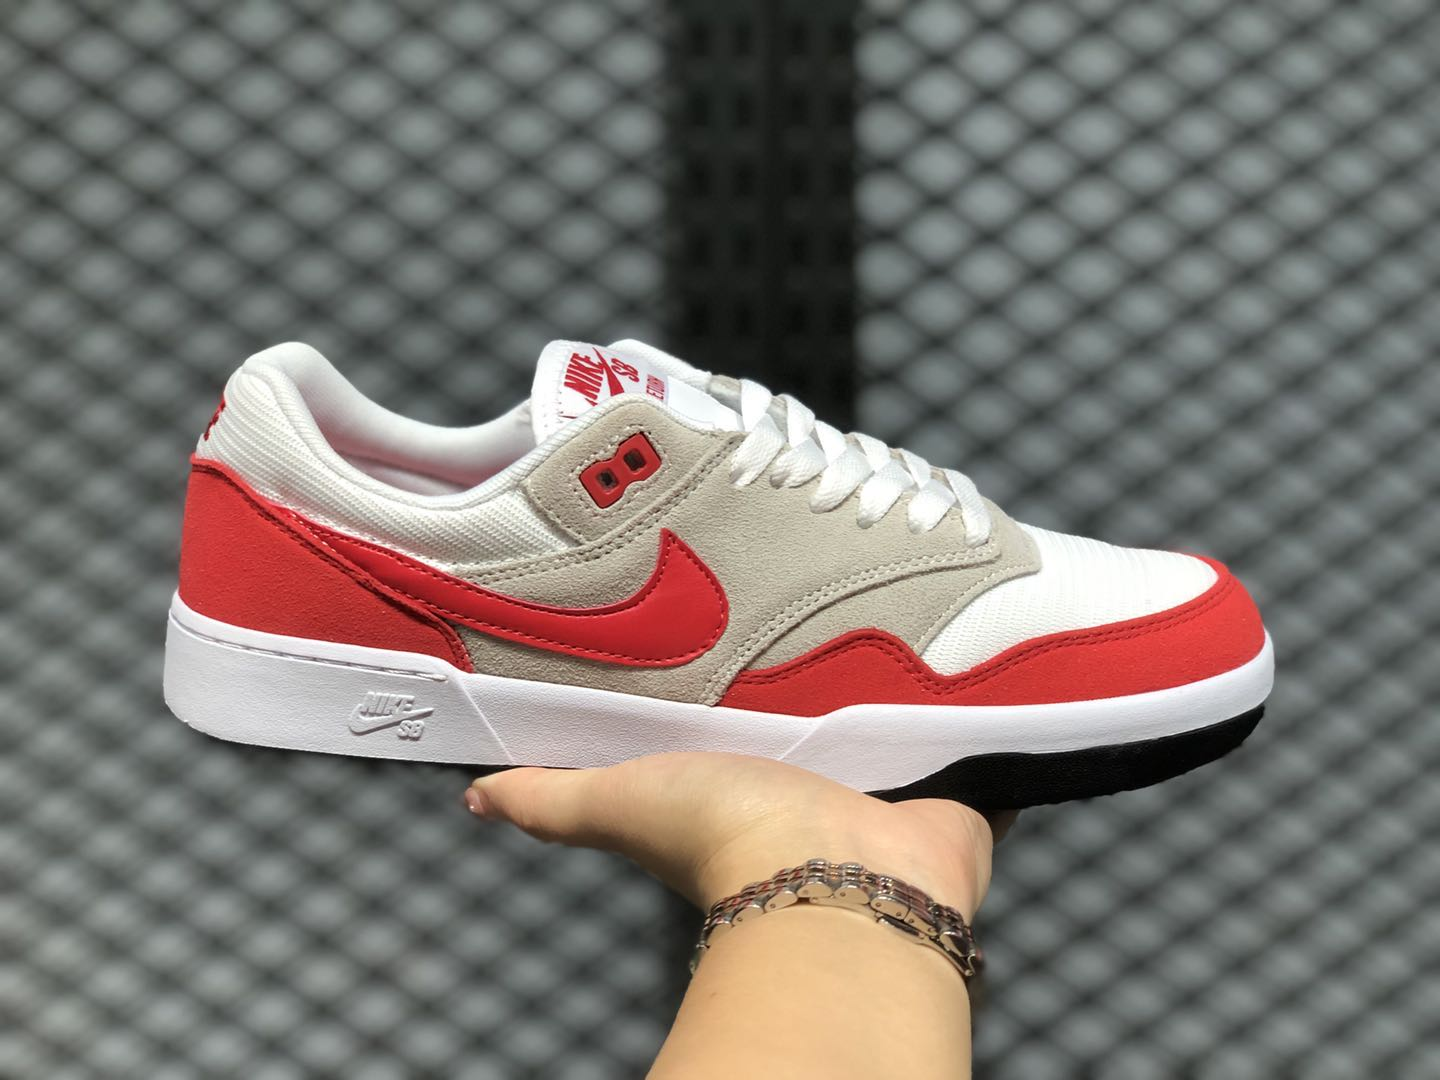 nike zoom turbine size 10 shoes for women for sale